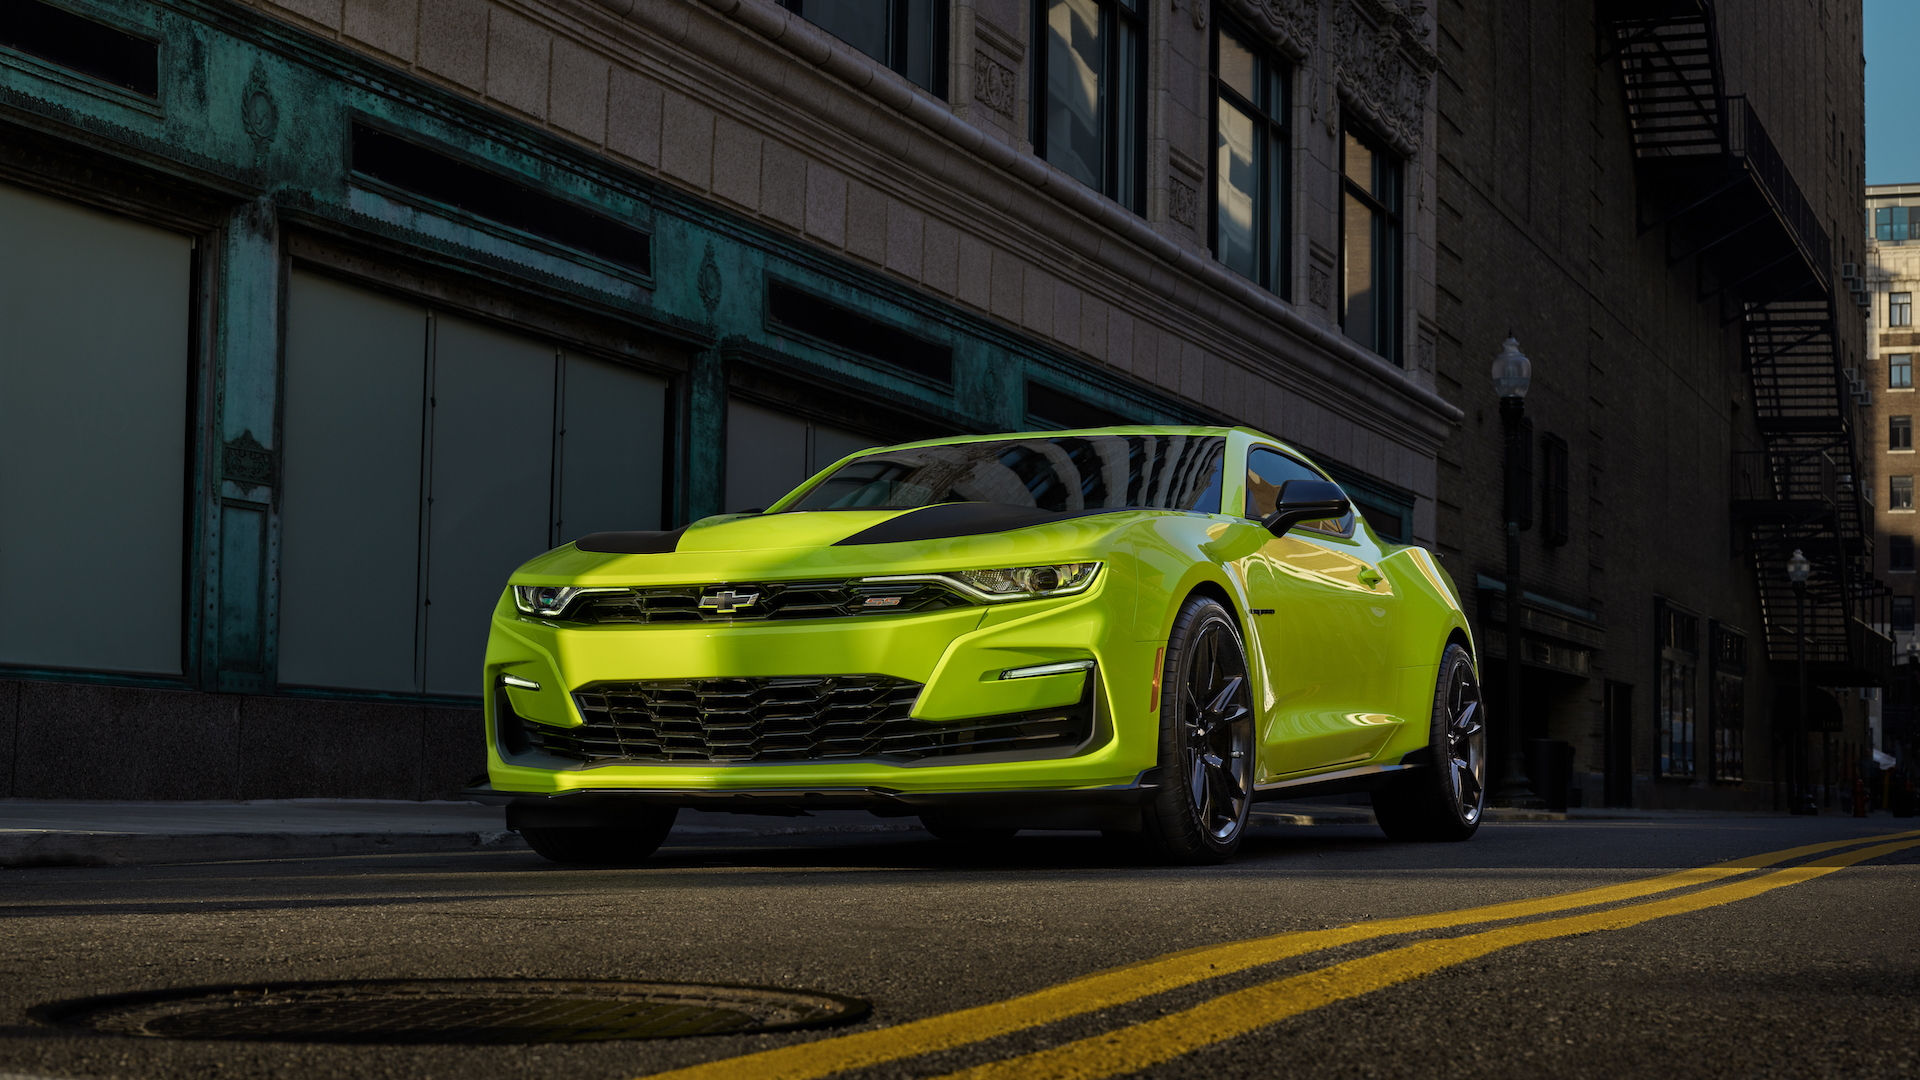 2019 Chevrolet Camaro SEMA show car in Shock color